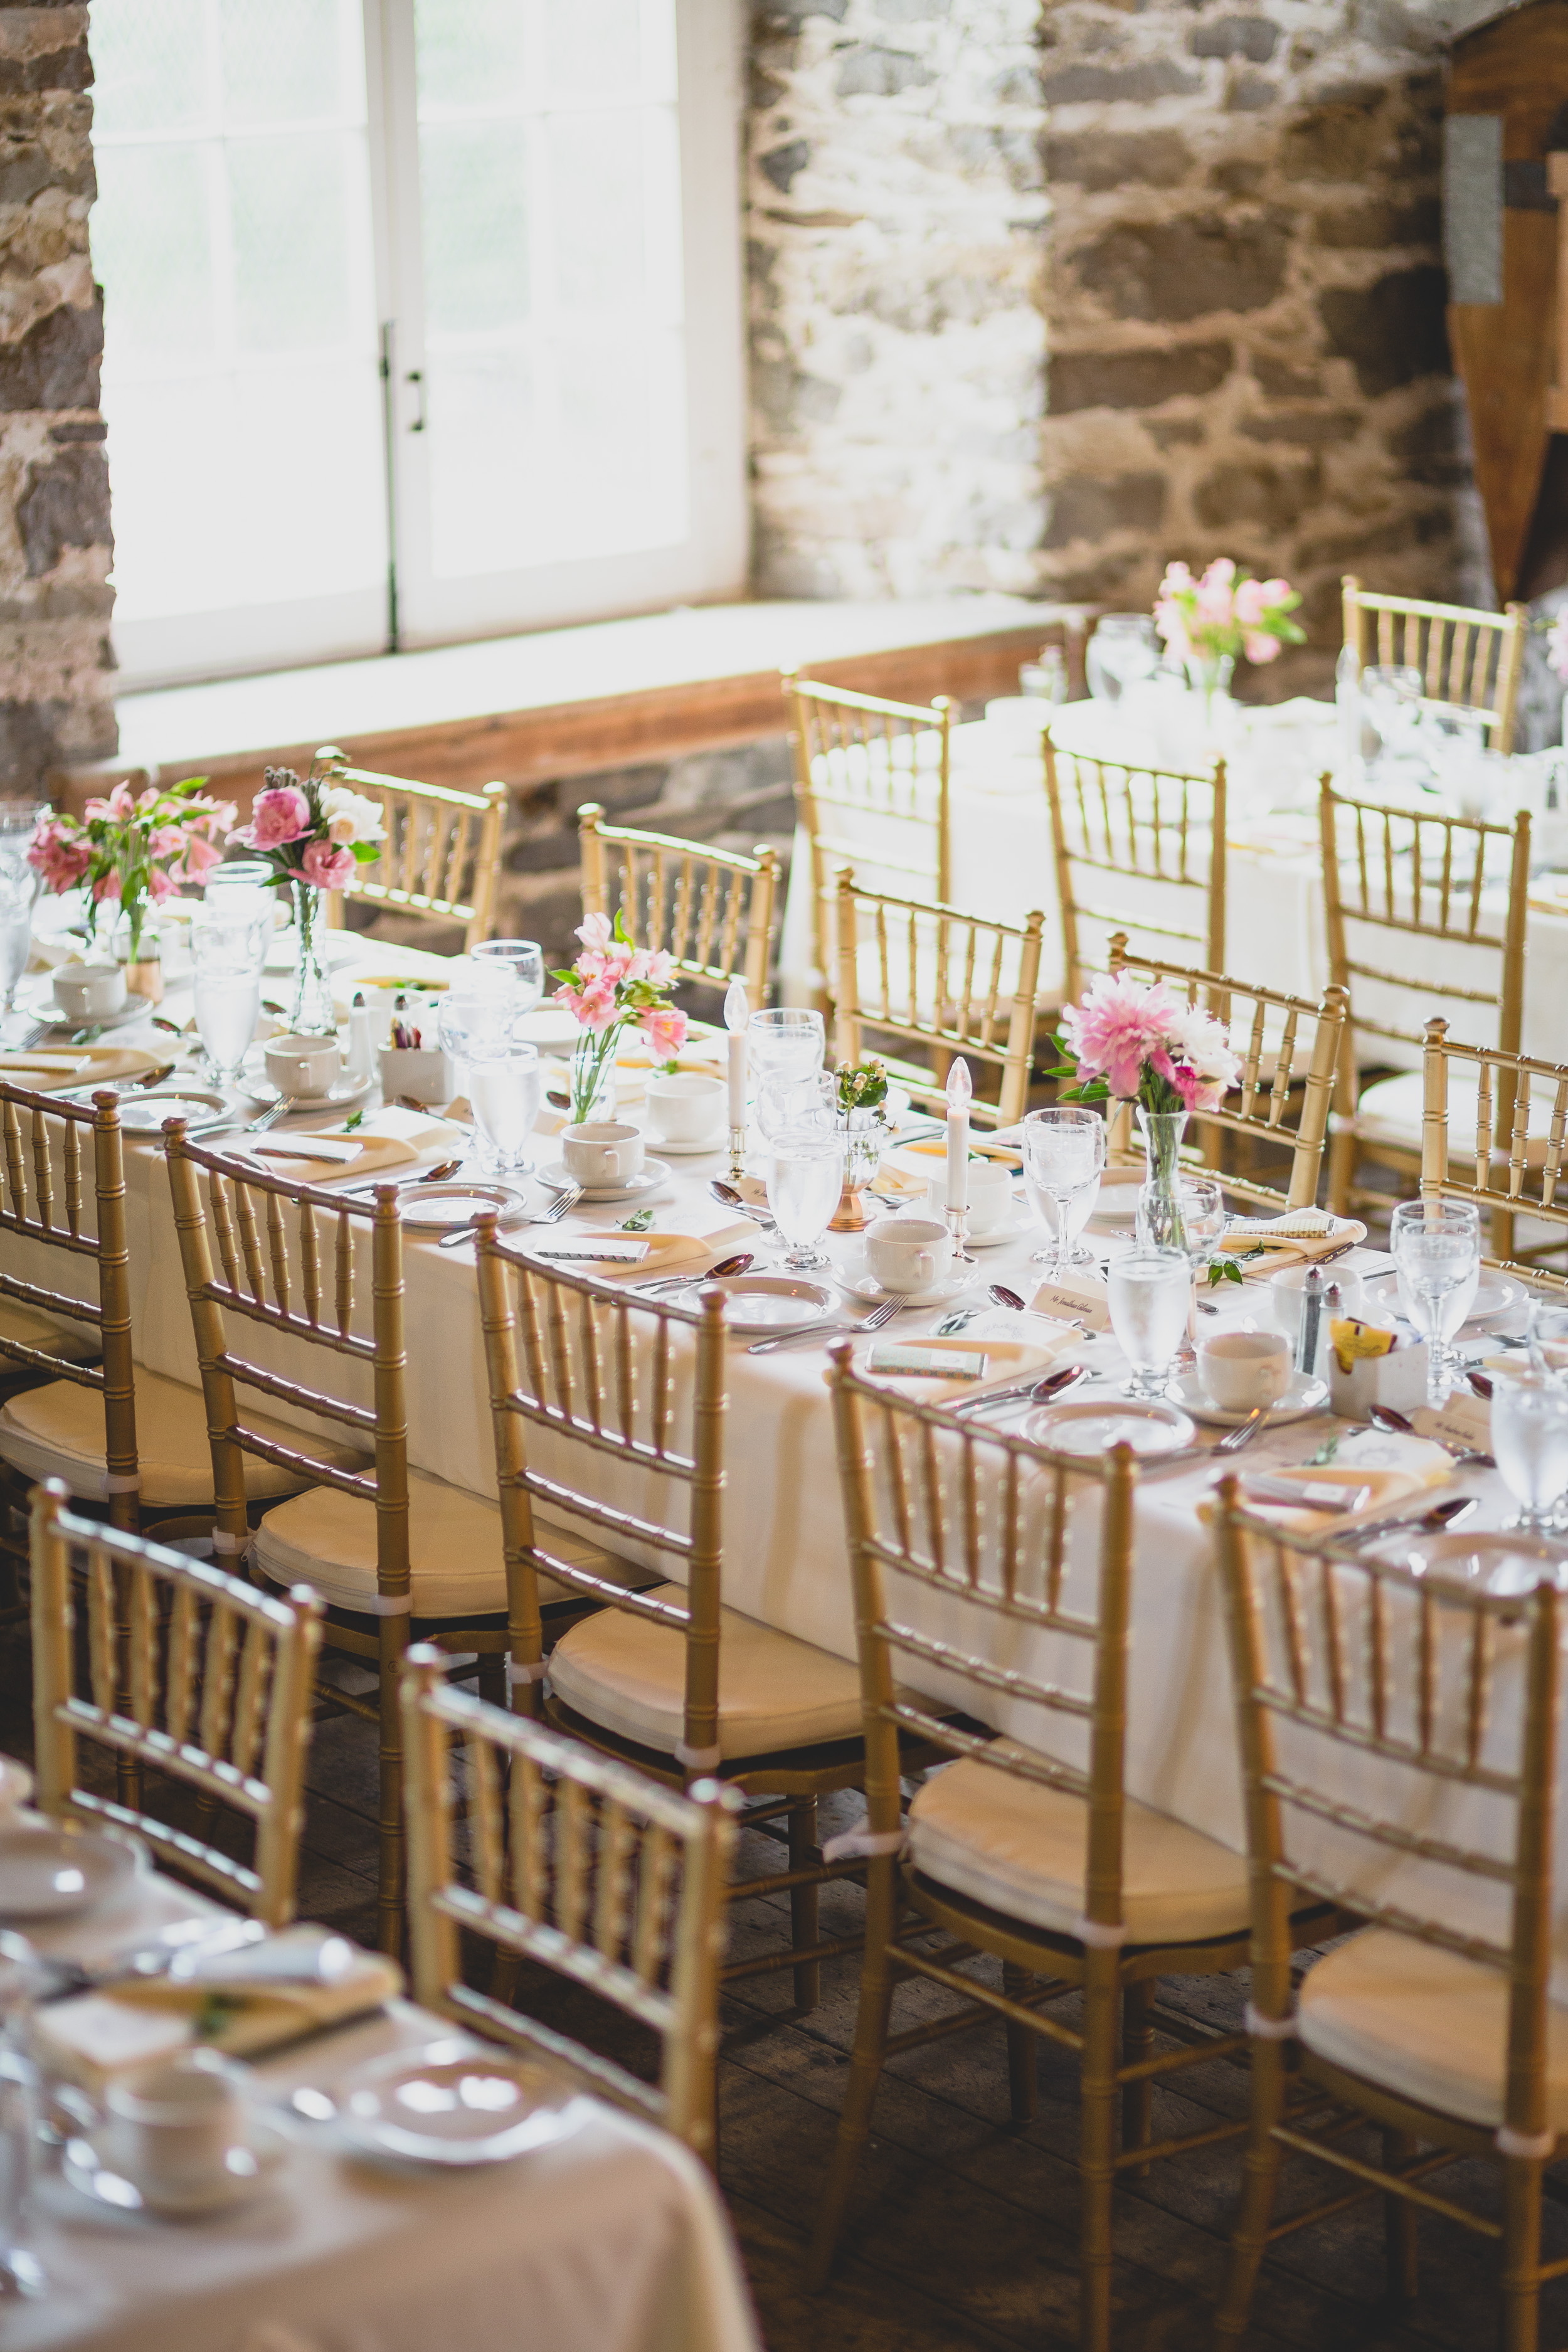 45-Watsons_mill_wedding_reception_table.jpg